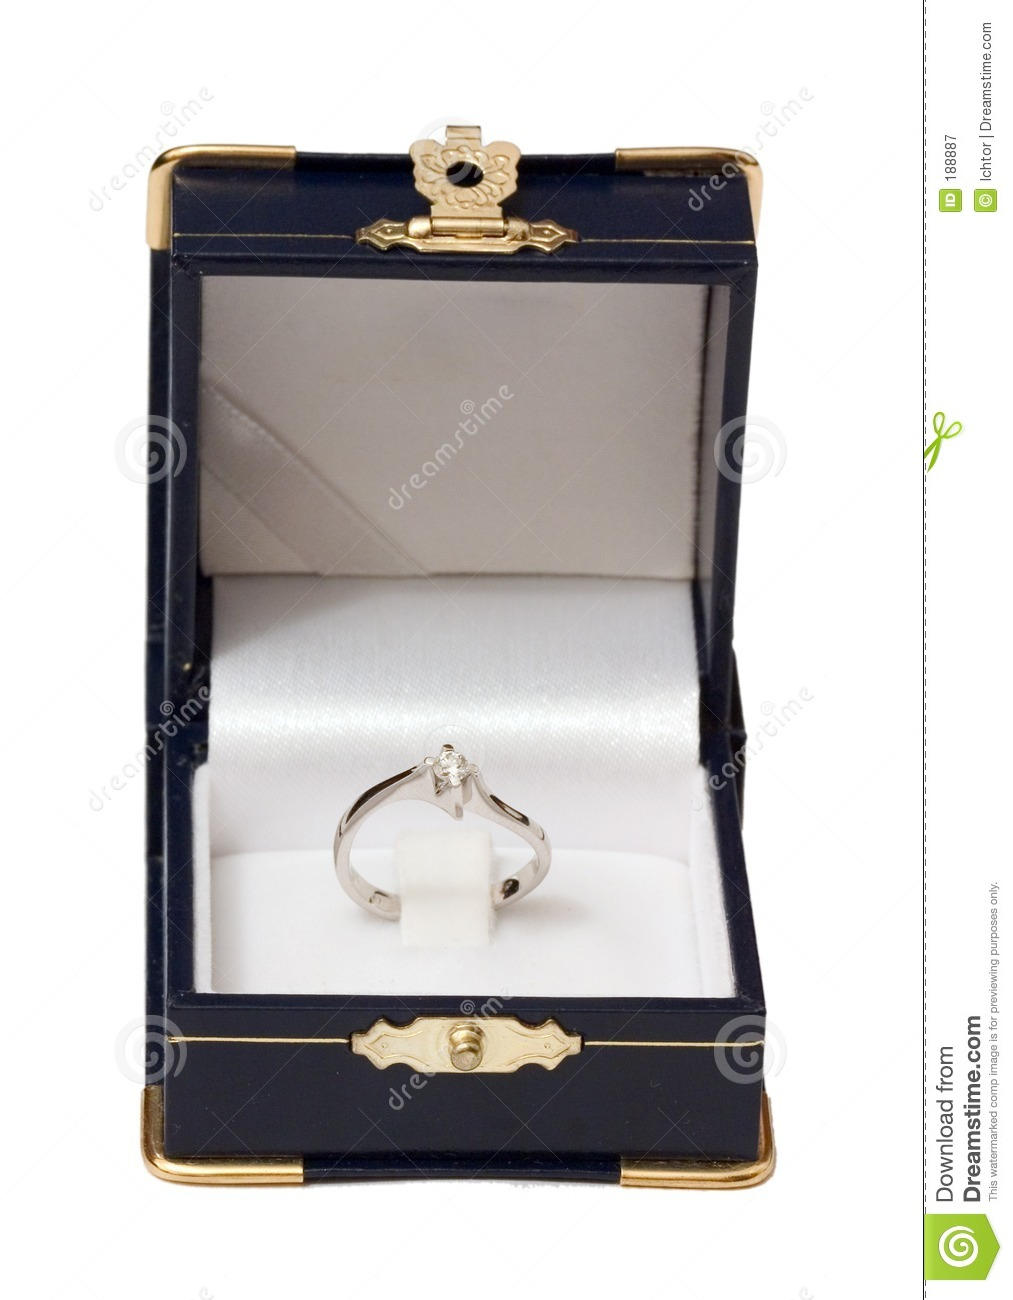 Open Jewel Case with Ring